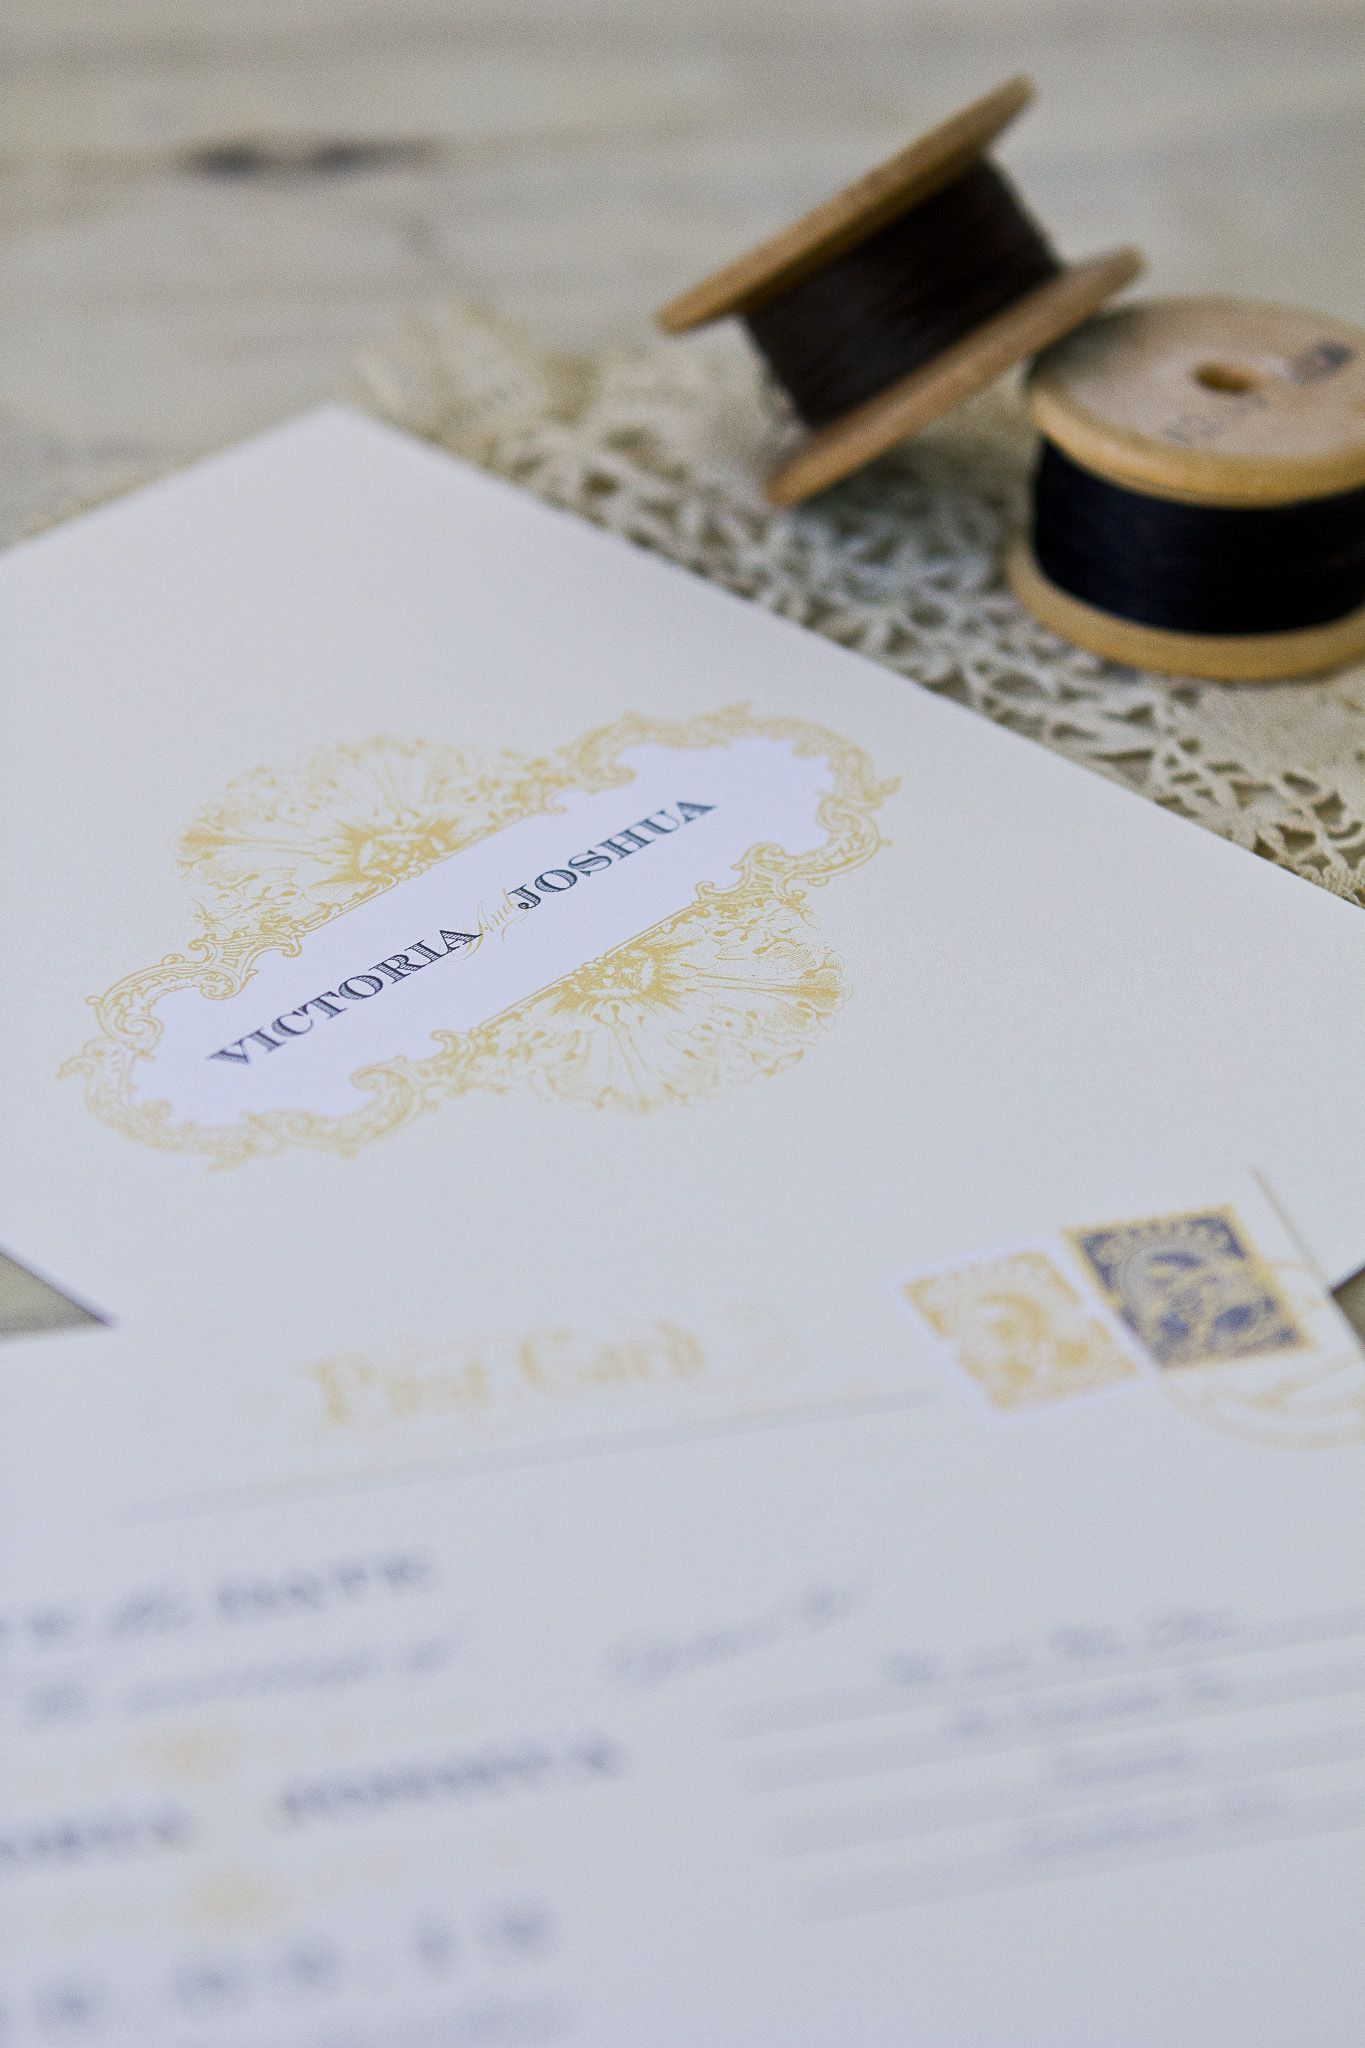 Reinforce your antique elegance theme with motifs sprawled across ...